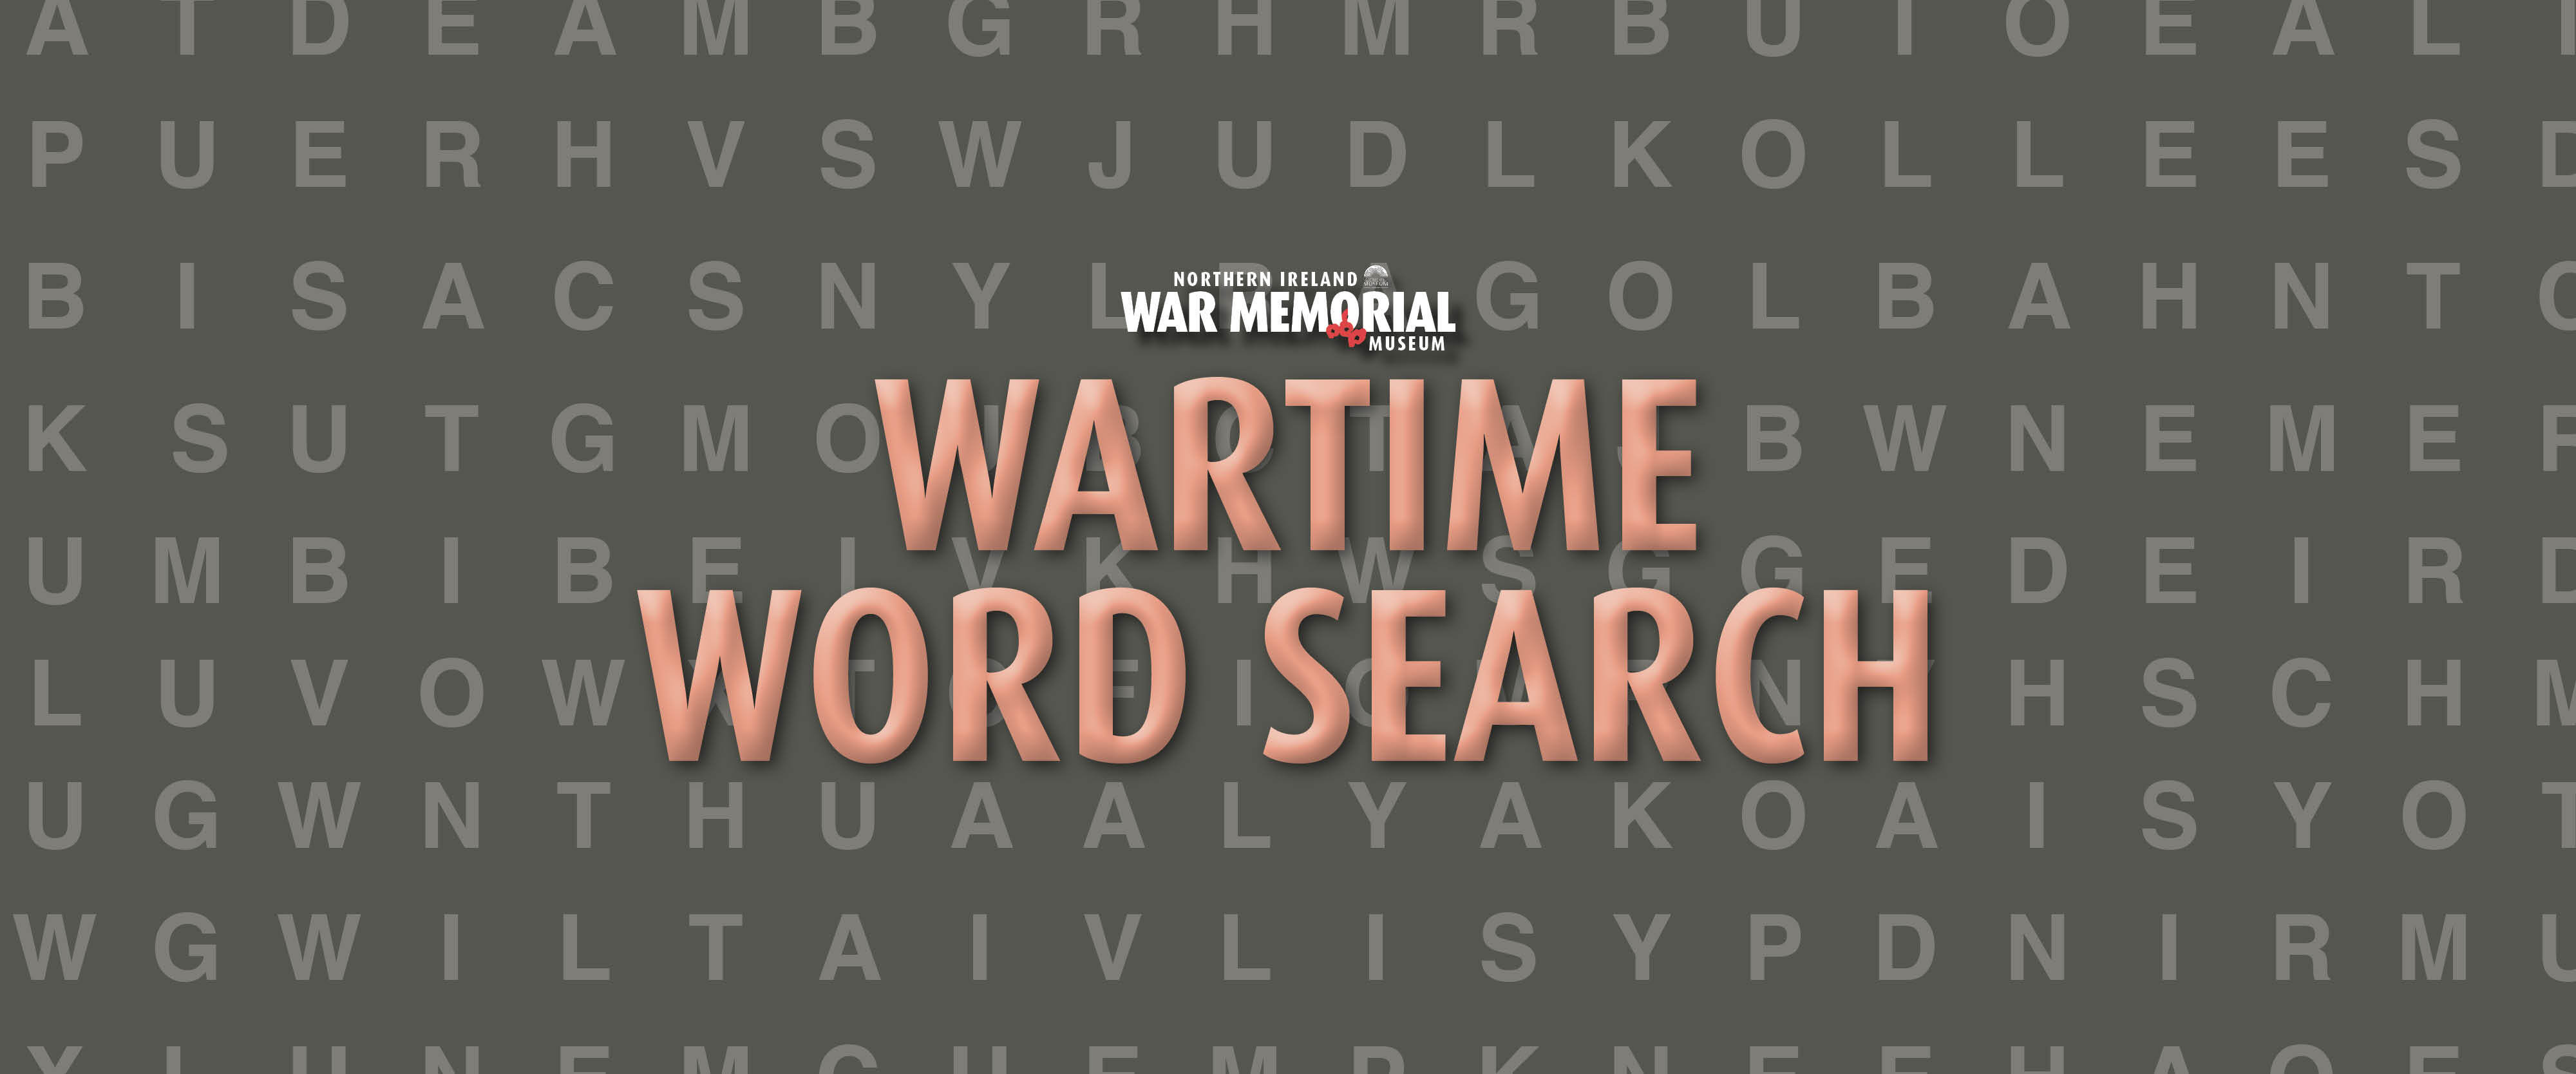 Wartime Word Search